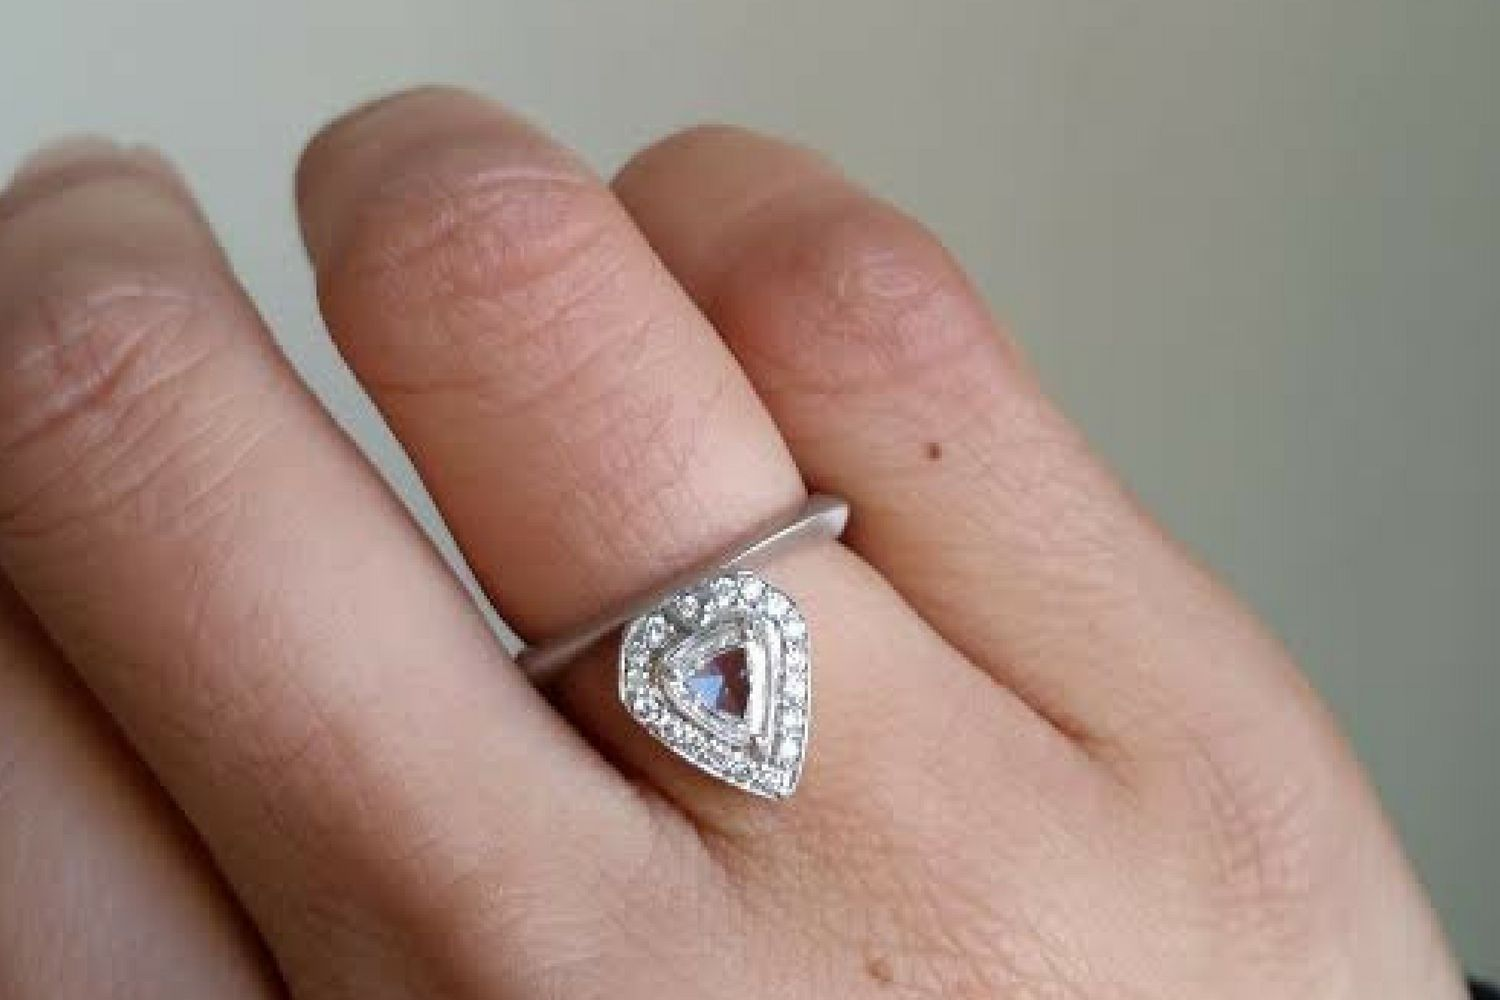 Engagement Ring Shopping: Designers You Should Know